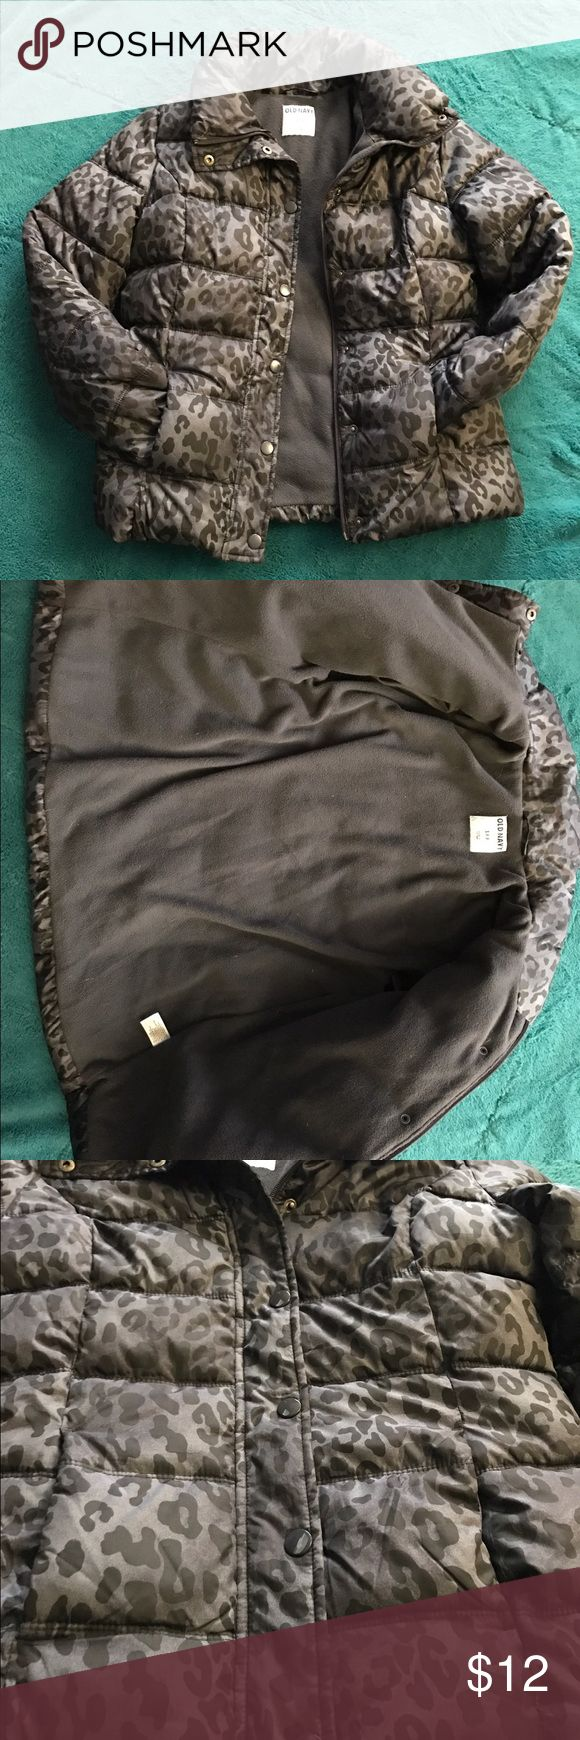 Old Navy Puffer Jacket Gray Leopard Size Small Cute, comfortable and warm puffer jacket. It was only worn a handful of times and in great condition! Old Navy Jackets & Coats Puffers